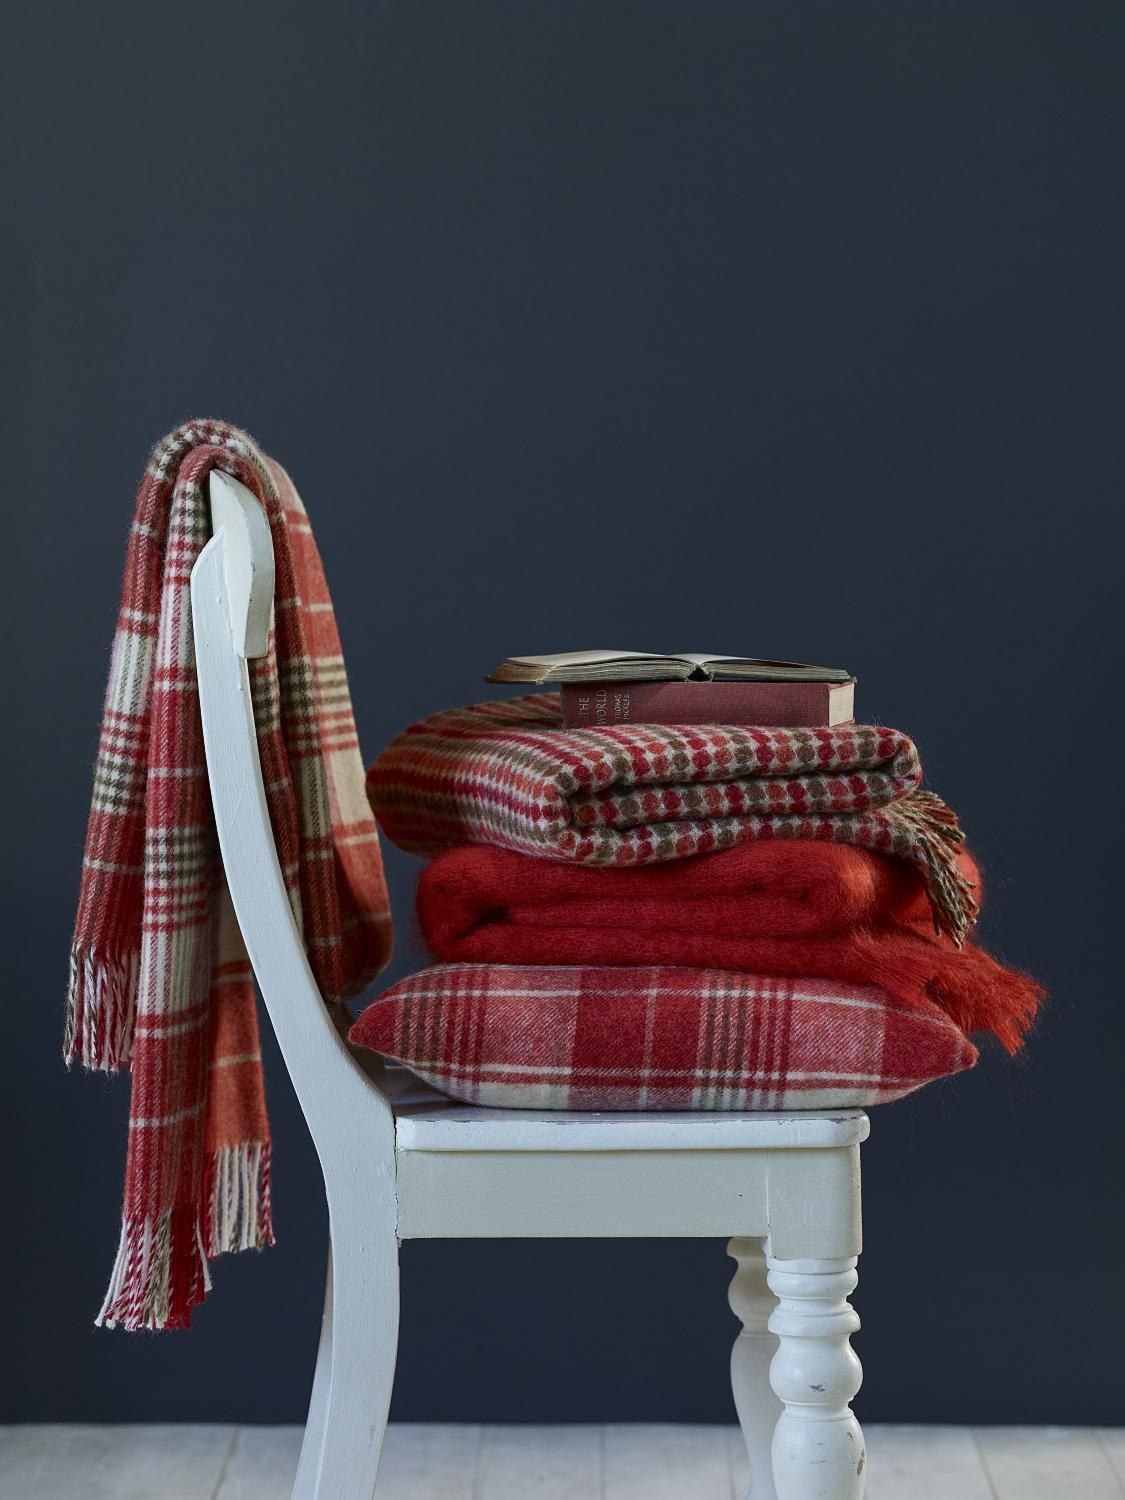 Cosy terracotta throws, wool blankets by Bronte by Moon (An #AutumnFair exhibitor)